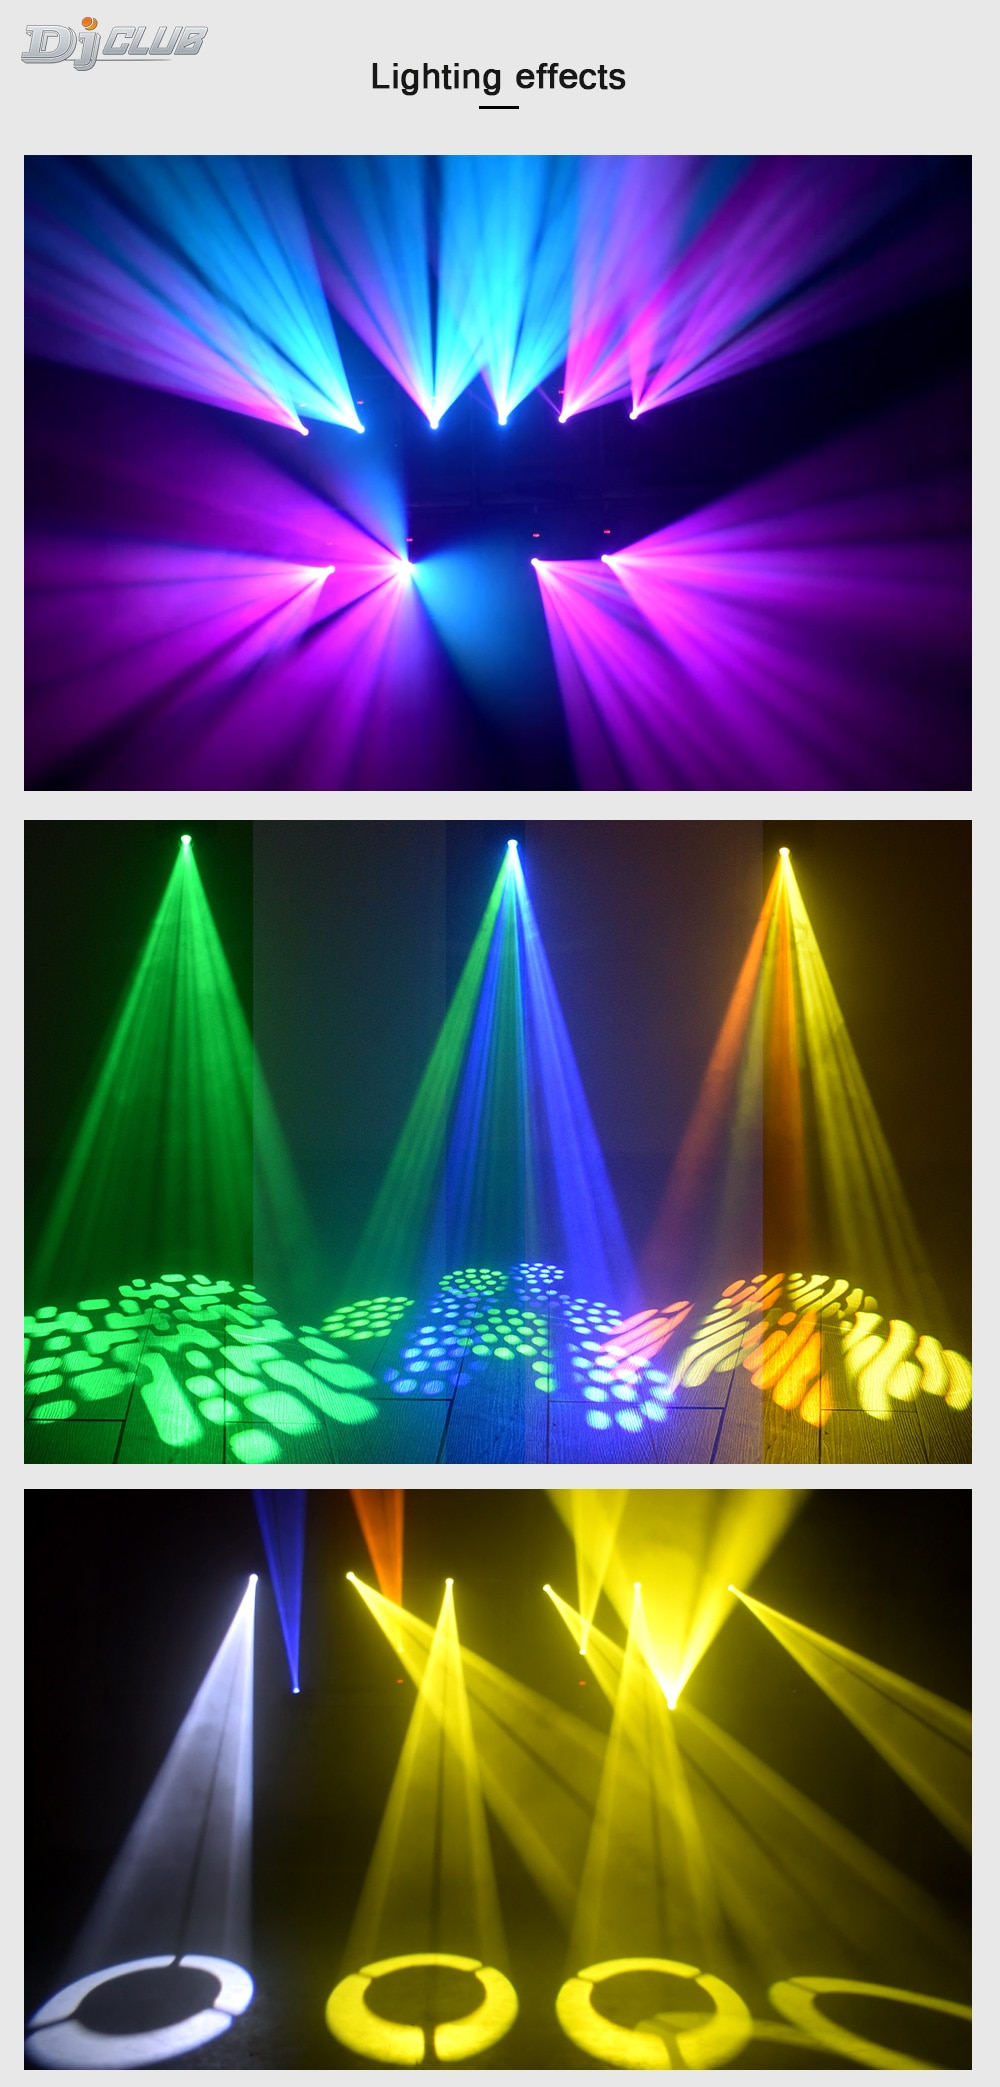 Lyre Led 60W Moving Head Hybrid Mini Spot Dj Light Of High Quality With 3 Face Prism Dmx-512 For Stage Party Lighting